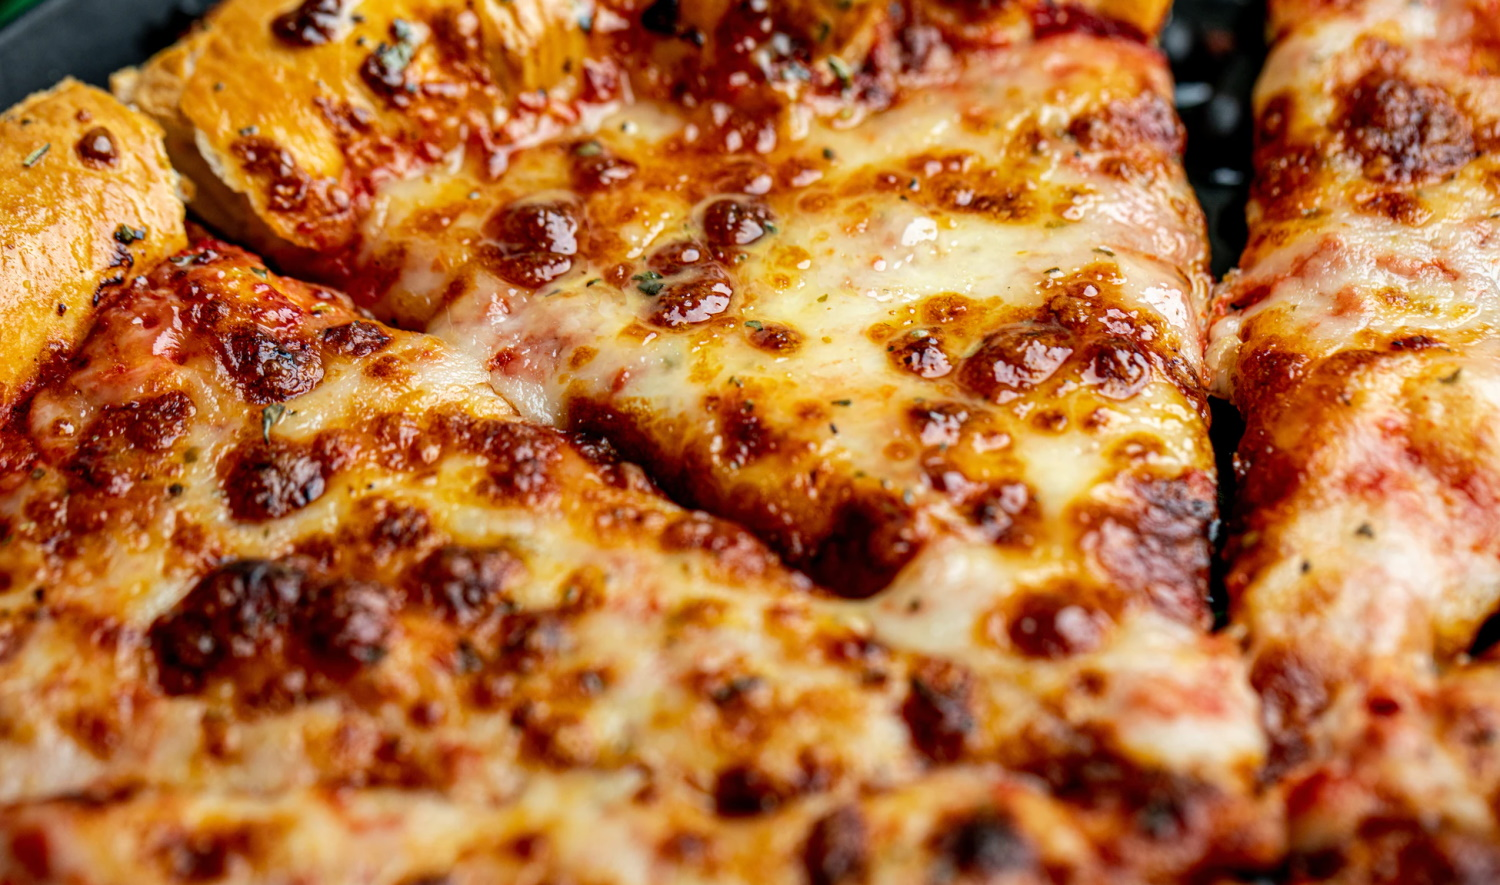 Dutch pizza chain discloses breach after hacker tries to extort company